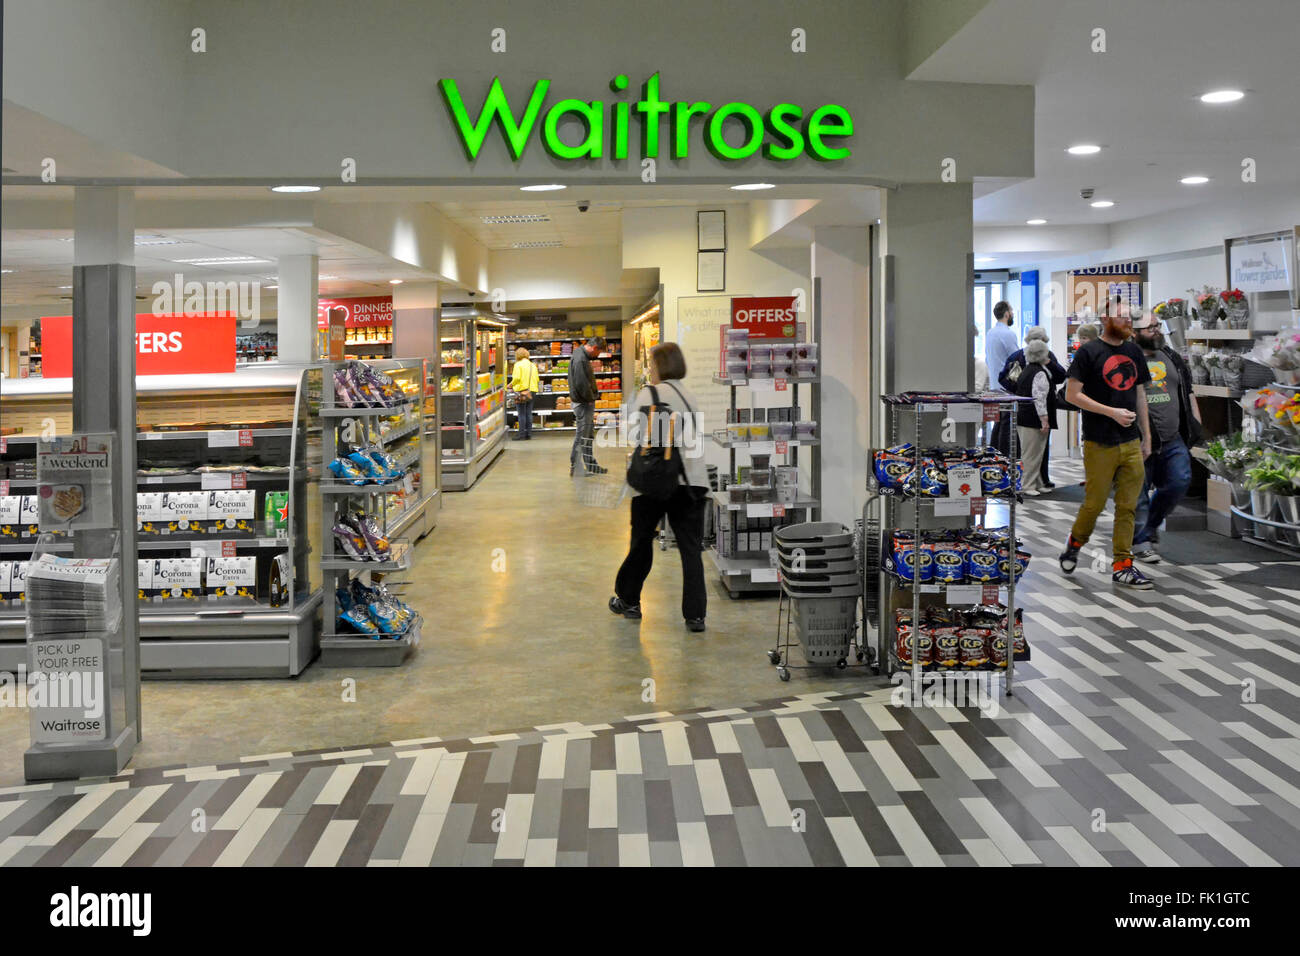 Waitrose supermarket interior view of a small store in the Fleet Welcome Break motorway service station on the M3 motorway in Hampshire England UK Stock Photo